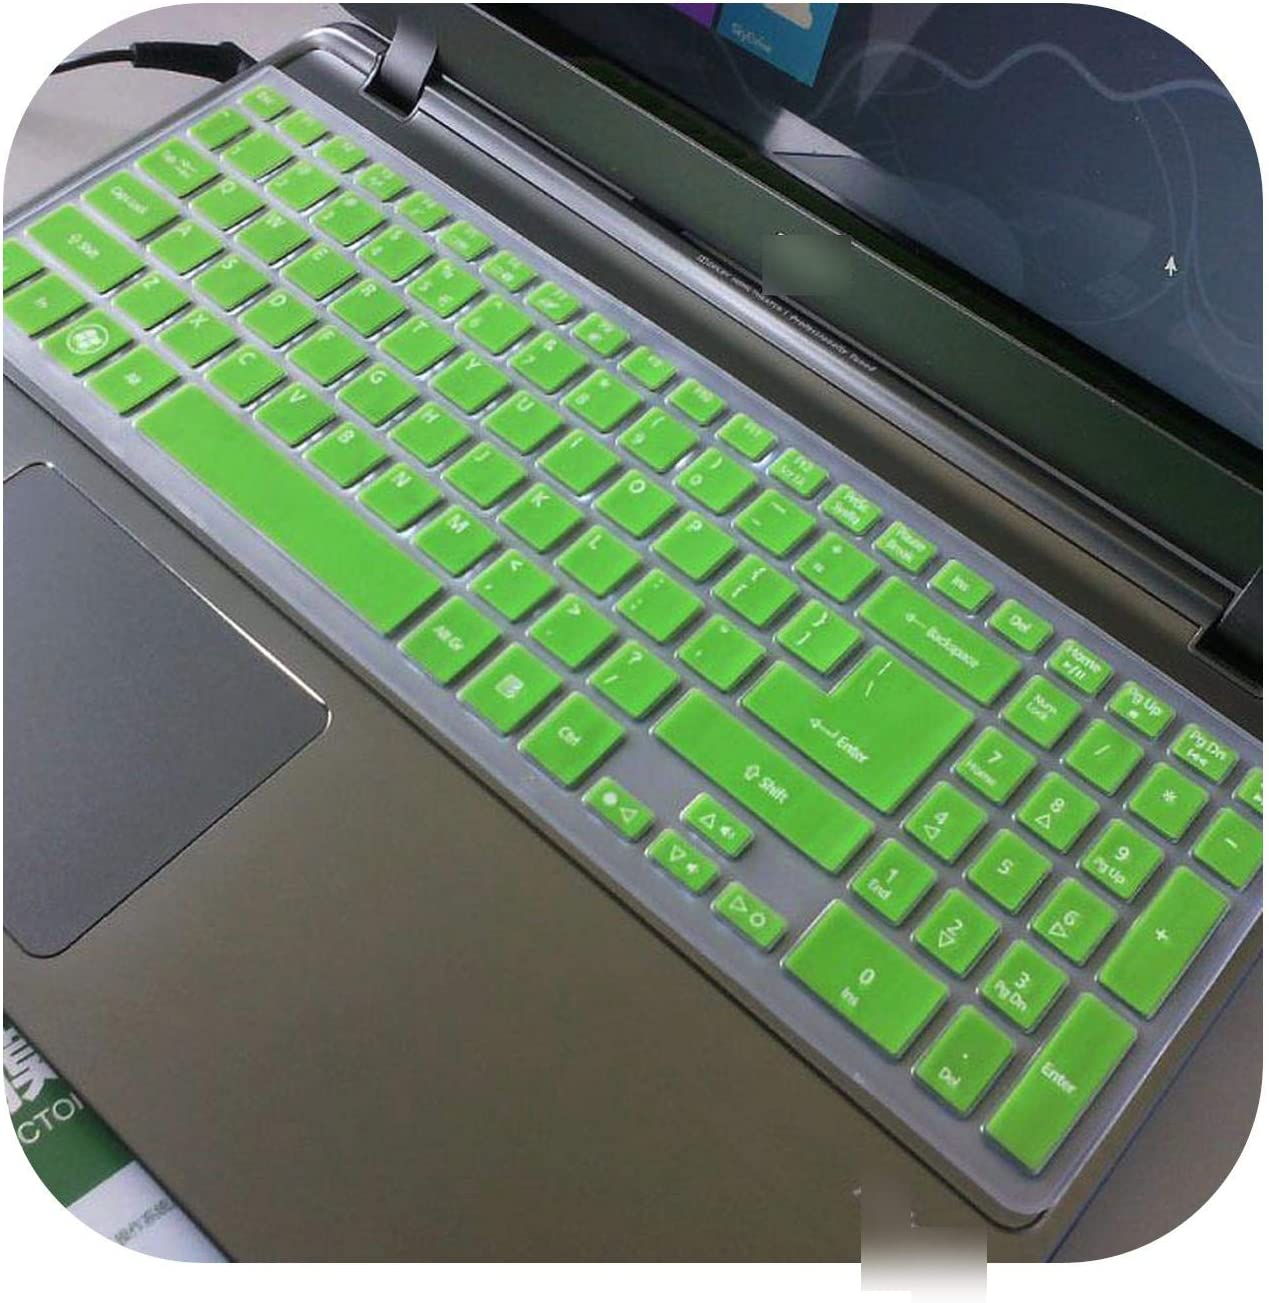 for Acer Aspire M5 581T M3 581T M5 581G V5 551G V5 573G V5 552 V5 531P V7 582 15/17 Inch Silicone Keyboard Skin Cover Protector-Green-